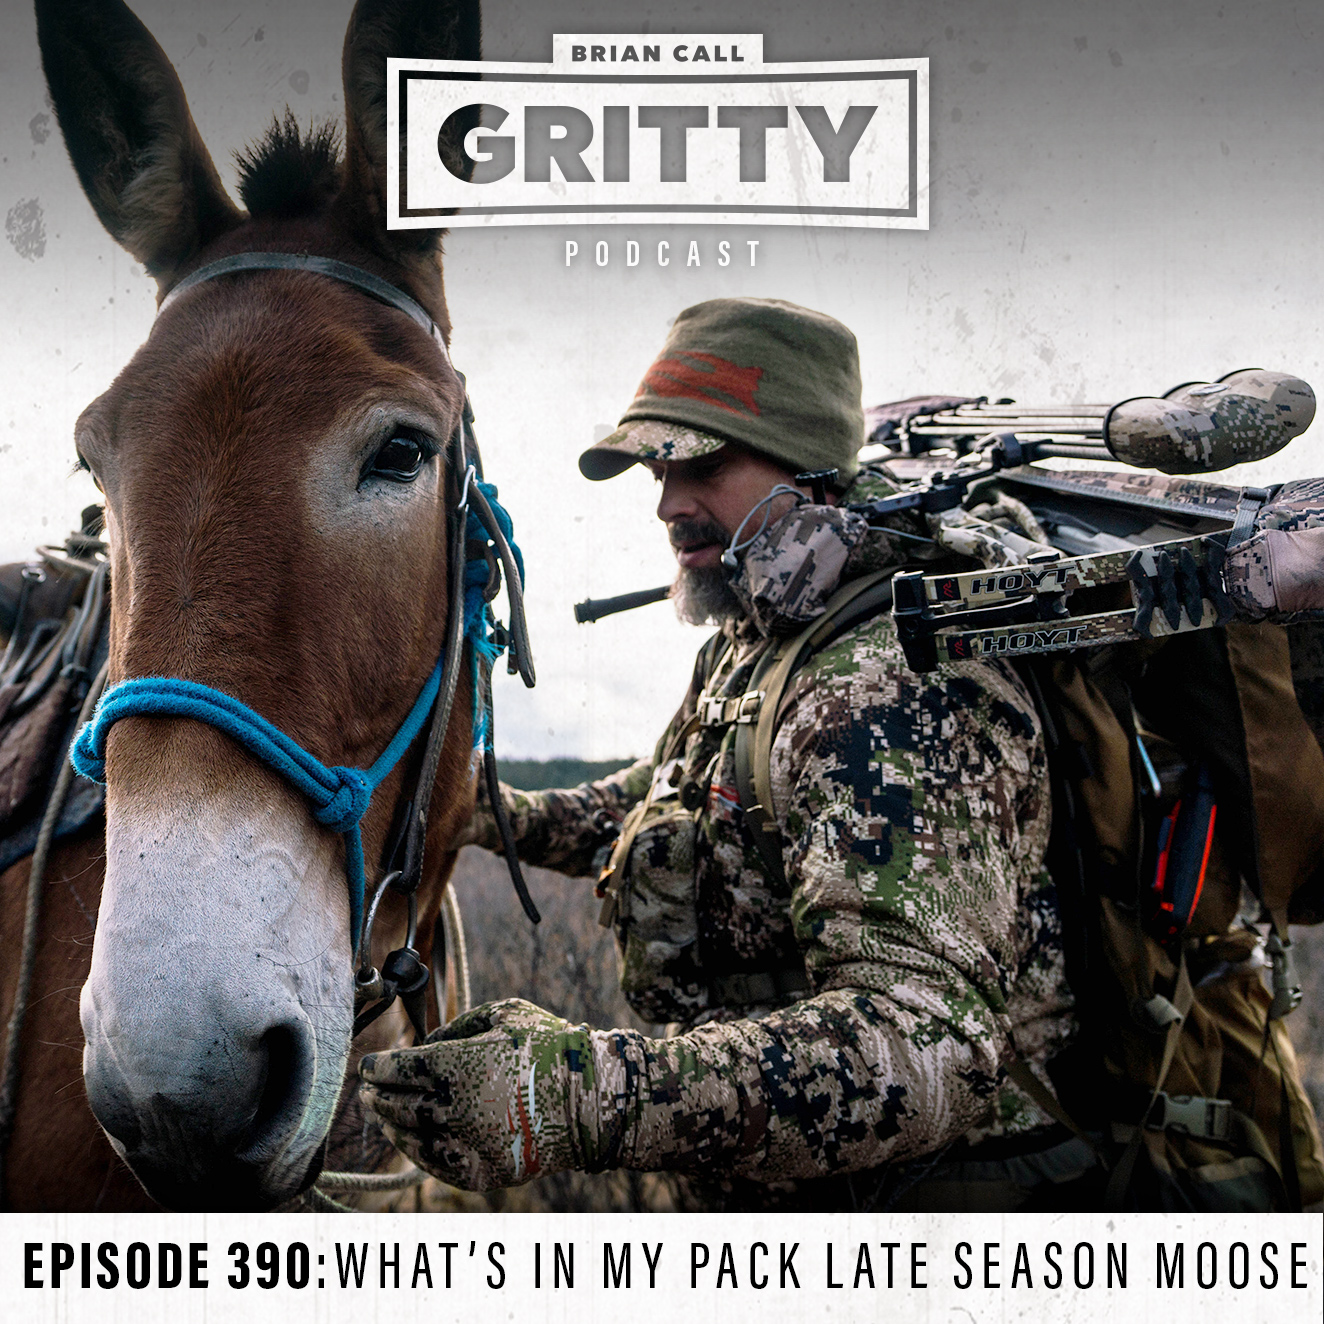 EPISODE 390: WHAT'S IN MY PACK LATE SEASON MOOSE